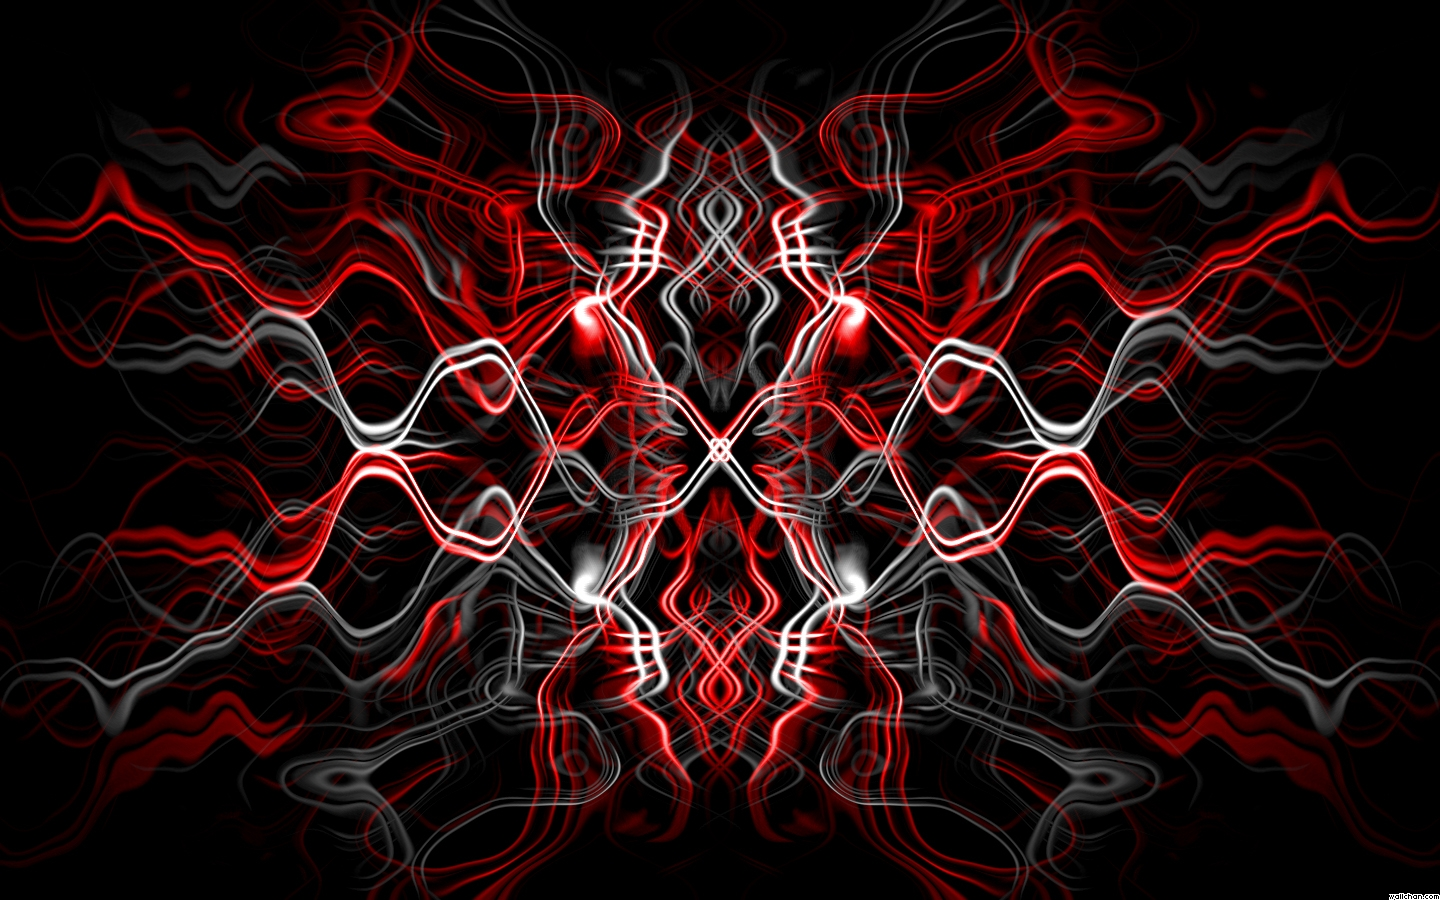 Red Black White Abstract Wallpaper Red And Black Abstract 1440x900